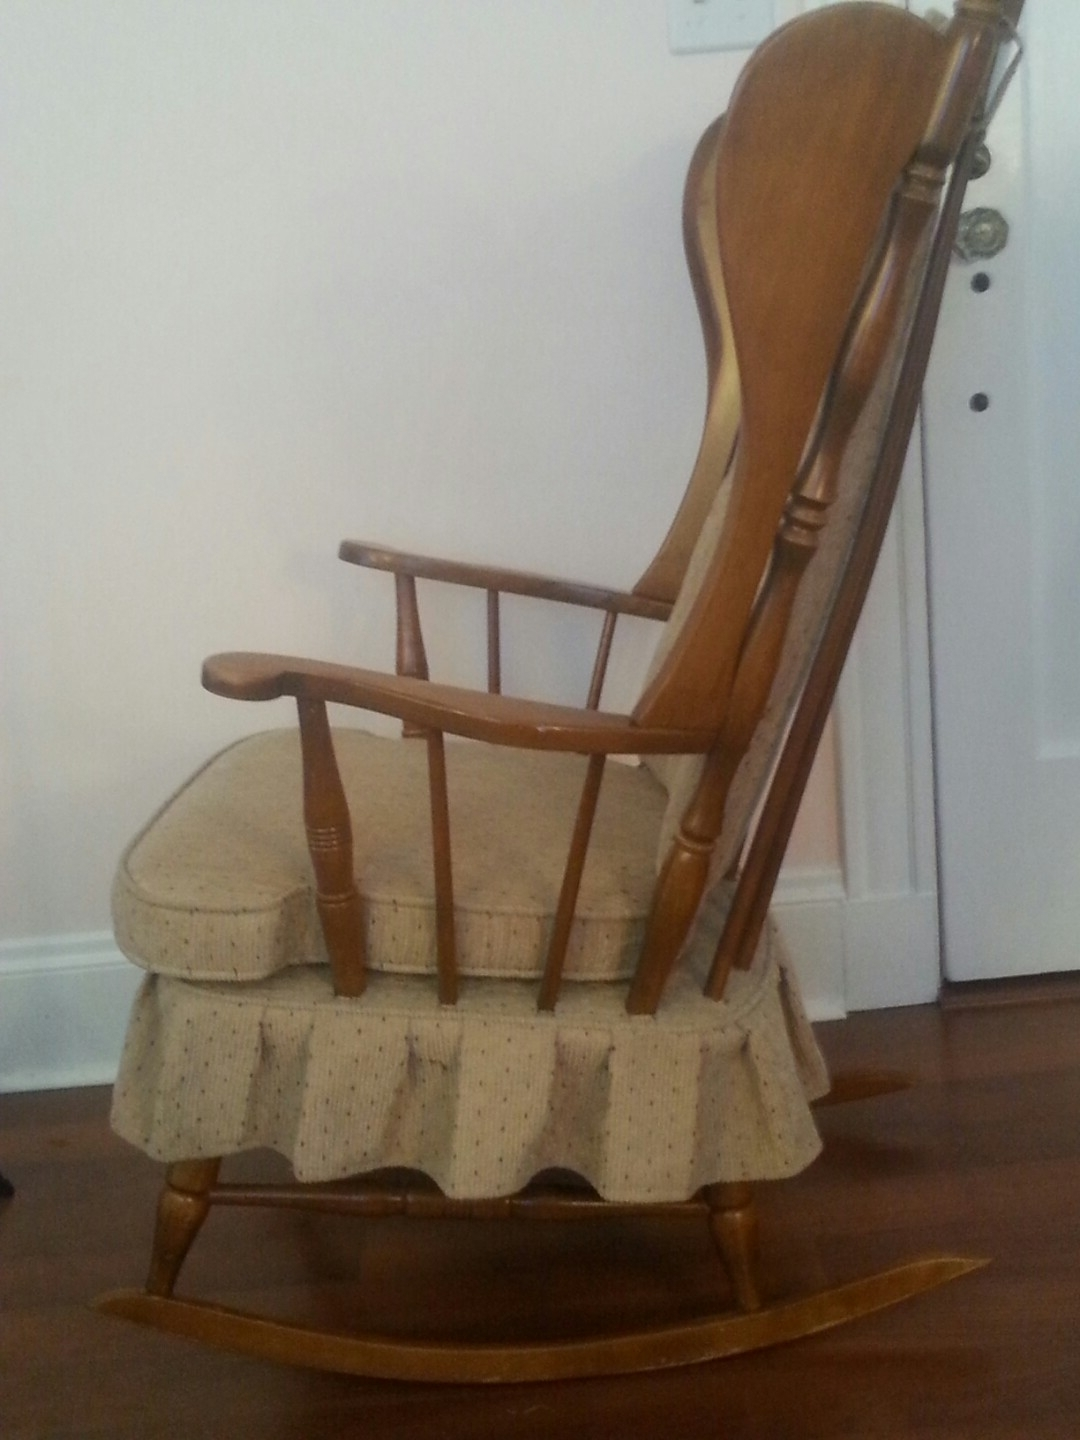 Popular Old Fashioned Rocking Chairs With Solid Old Fashioned Rocking Chair, Furniture On Carousell (View 8 of 15)